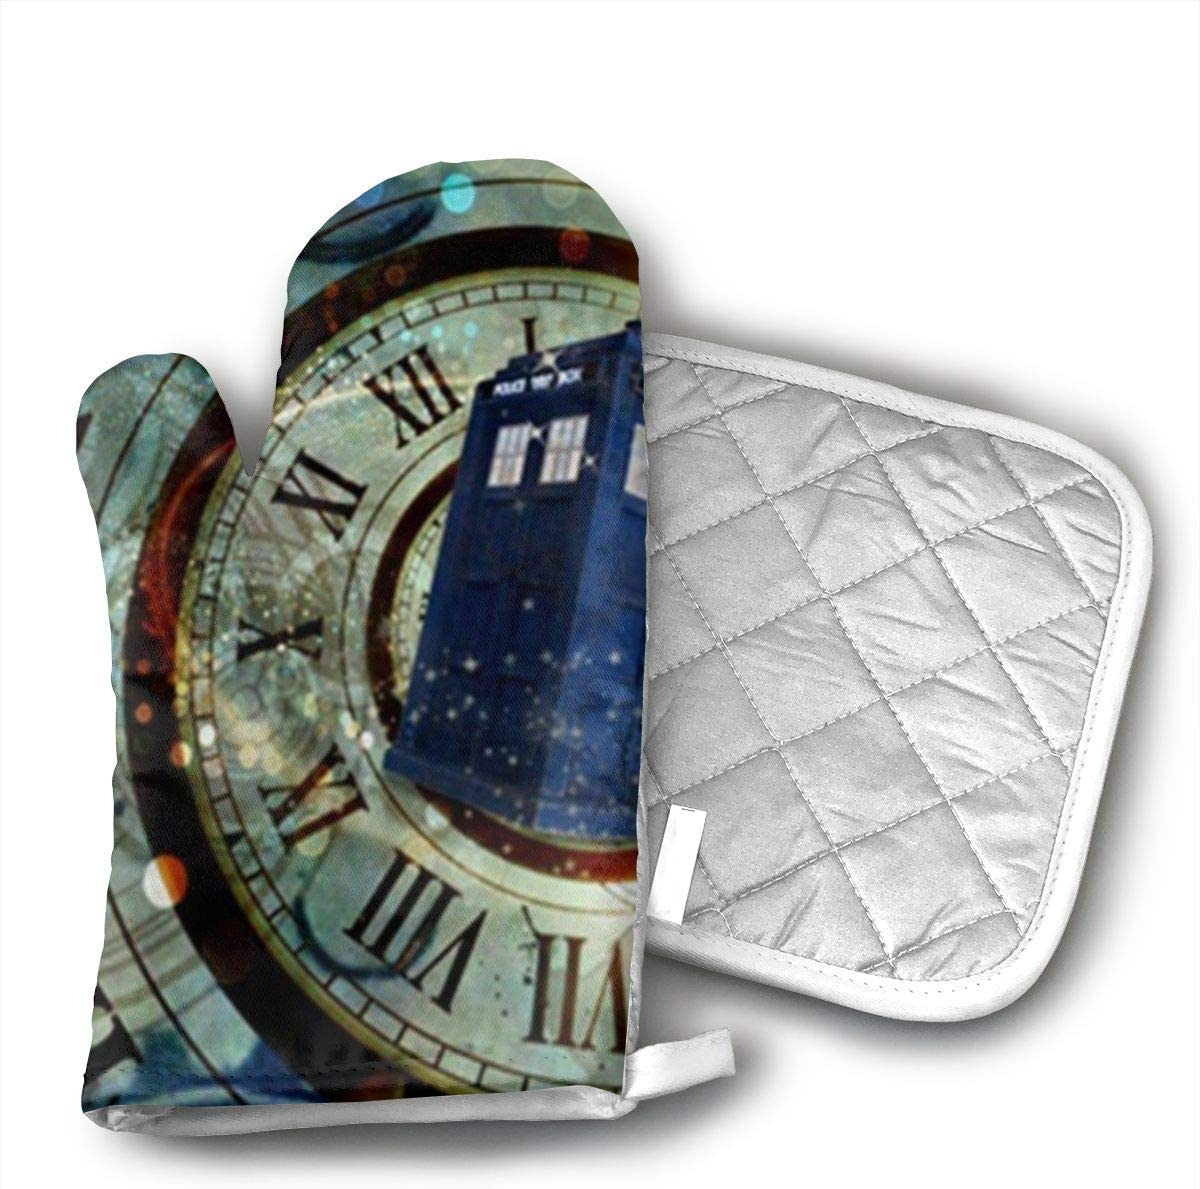 HiHMJ Doctor Dr Who Police Box Mice Custom Design Cool Gaming Mousepd Mouse Pad Mat 12 Kitchen Cotton Coating Oven Mitts Heat Resistant Potholder Gloves Microwave Oven Glove